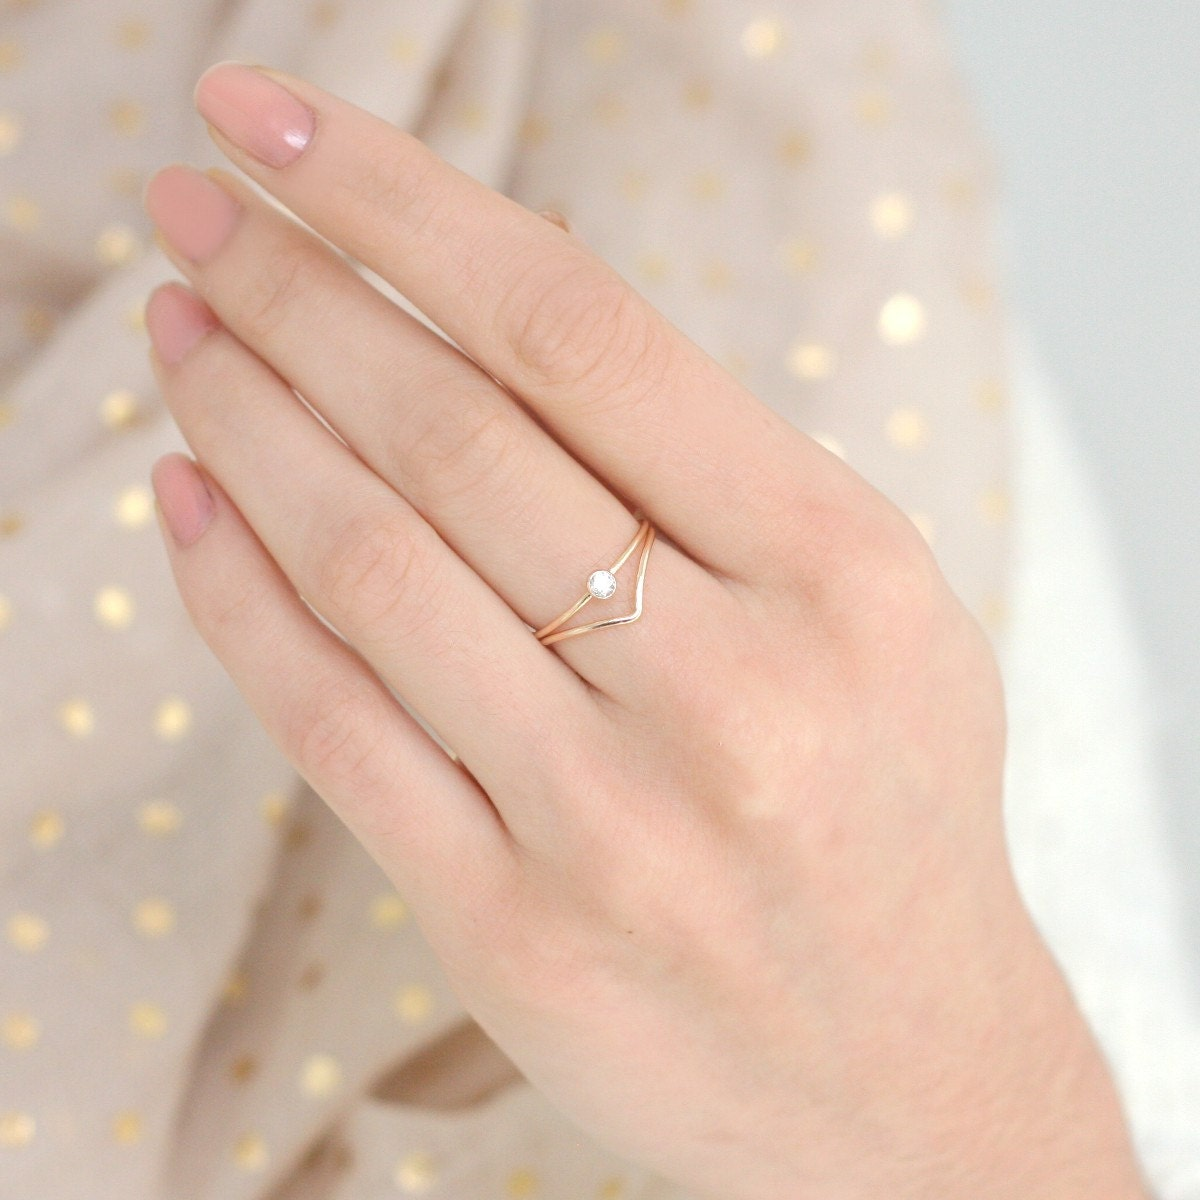 ring is a rings engagement bride pin s geometric minimalist this dream